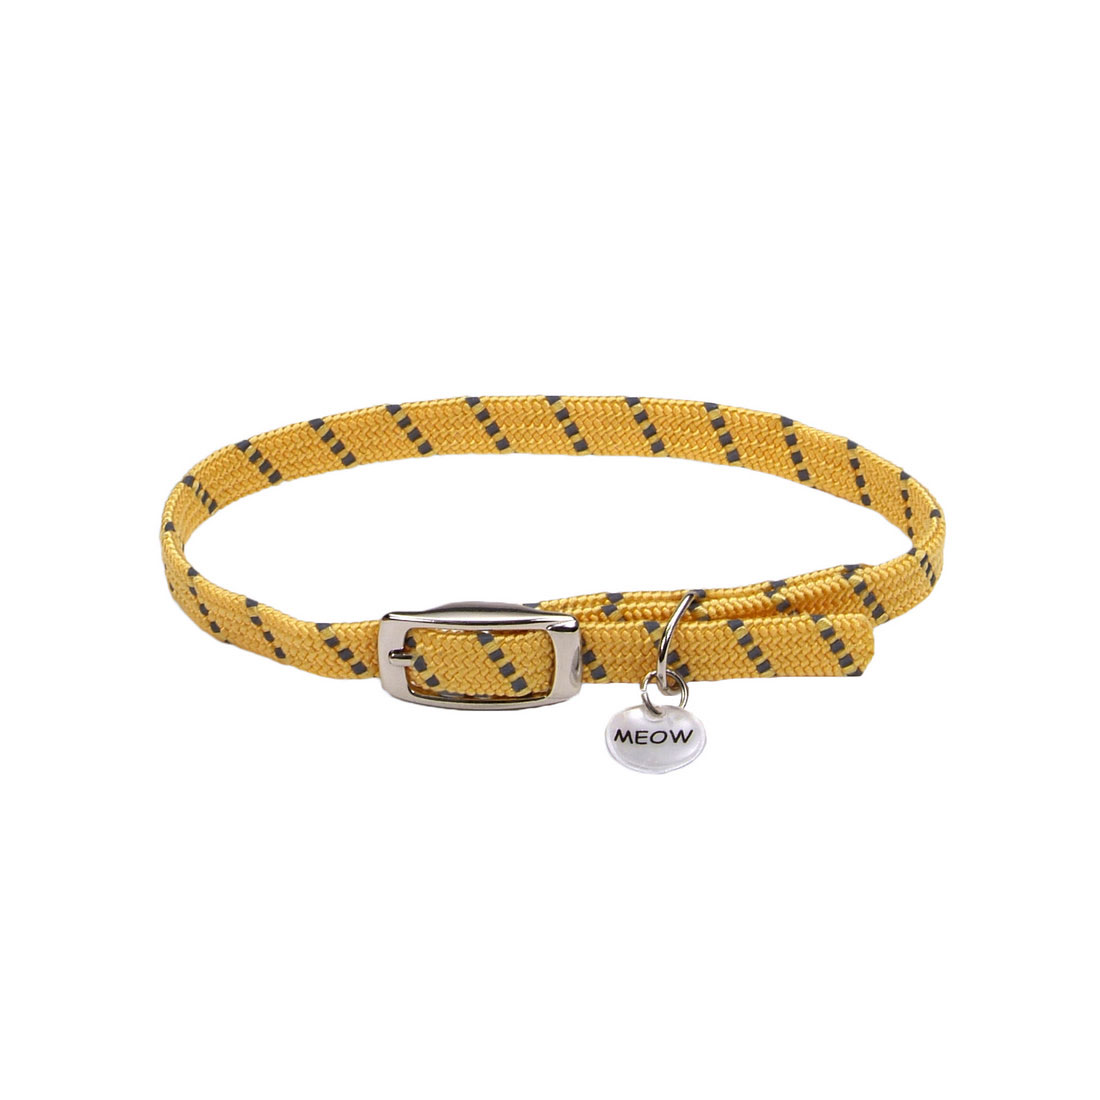 ElastaCat Reflective Safety Stretch Collar with Reflective Charm for Cats, Yellow, 10-in (Size: 10-in) Image